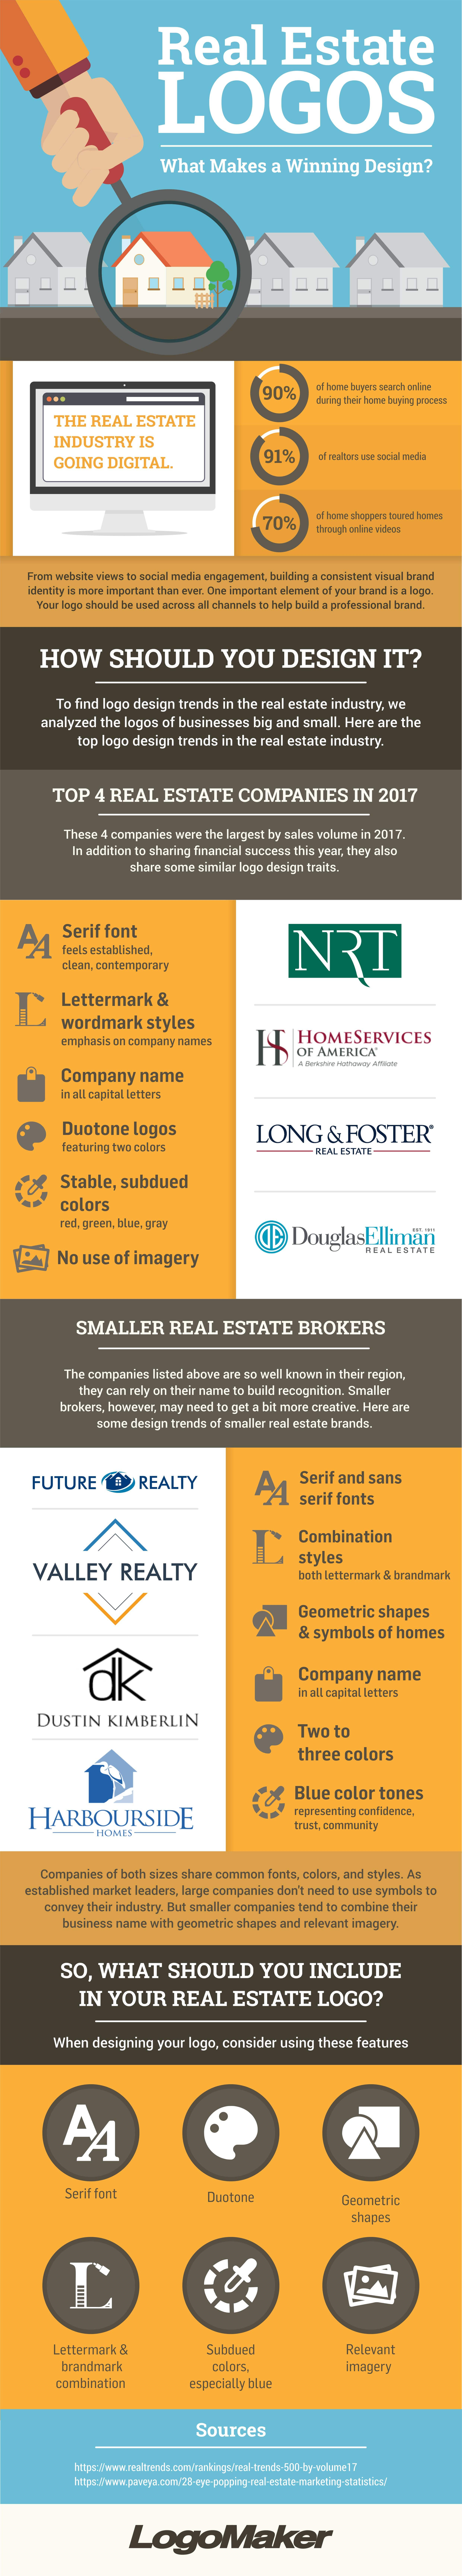 Real Estate Logo Infographic showing top logo design suggestions such as duotone colors serif fonts geometric shapes and subdued colors especially blue